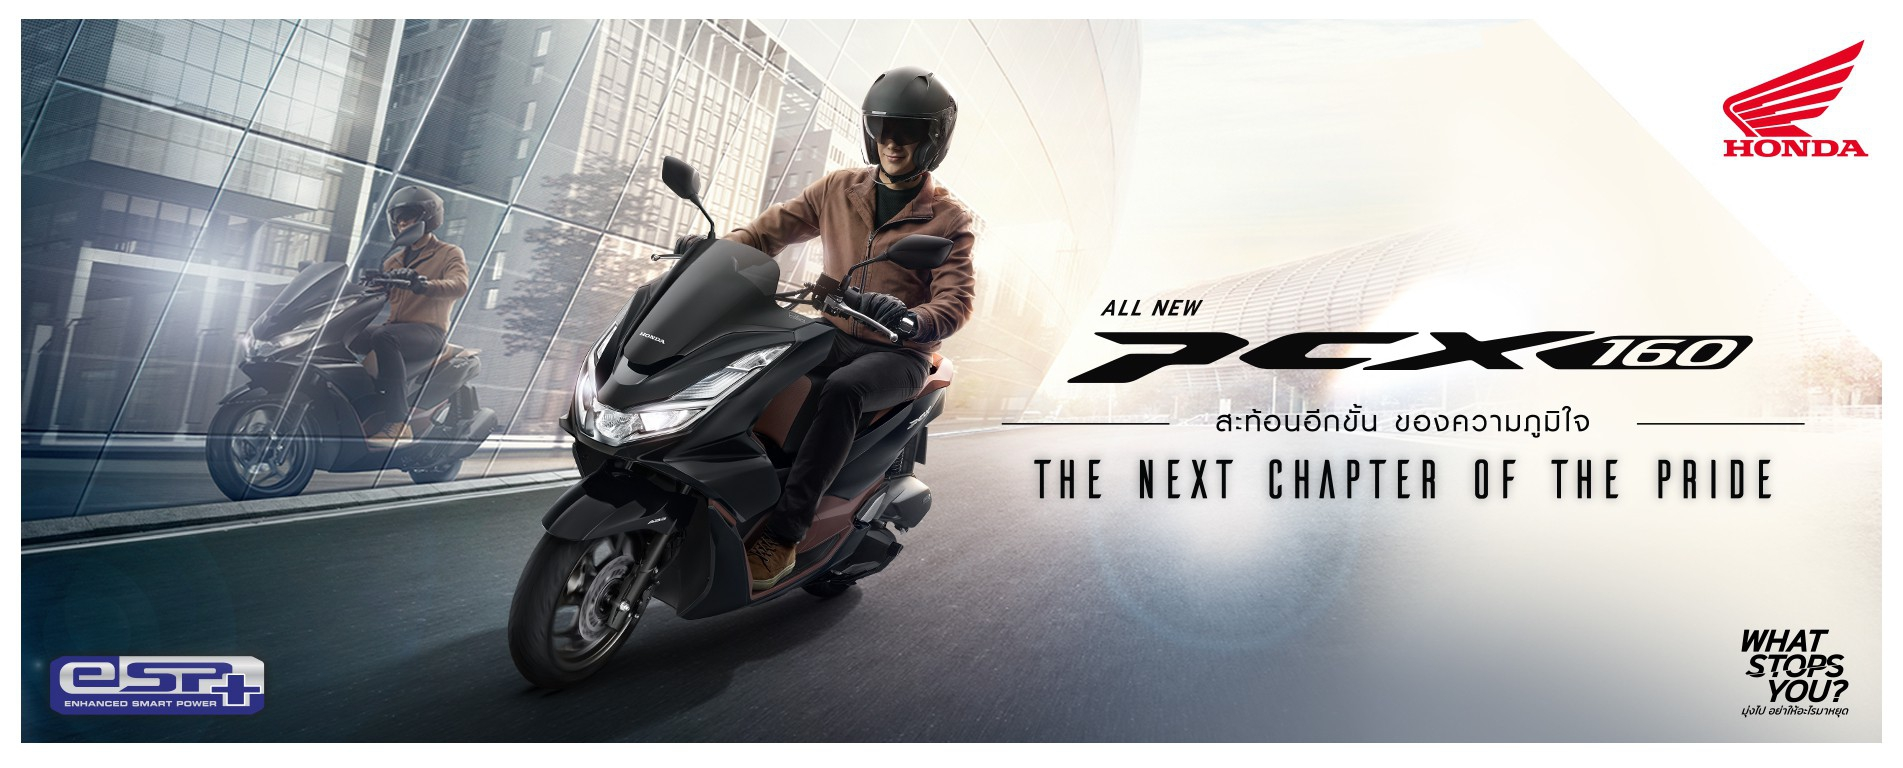 All_New_PCX160_BannerImage_1903x768